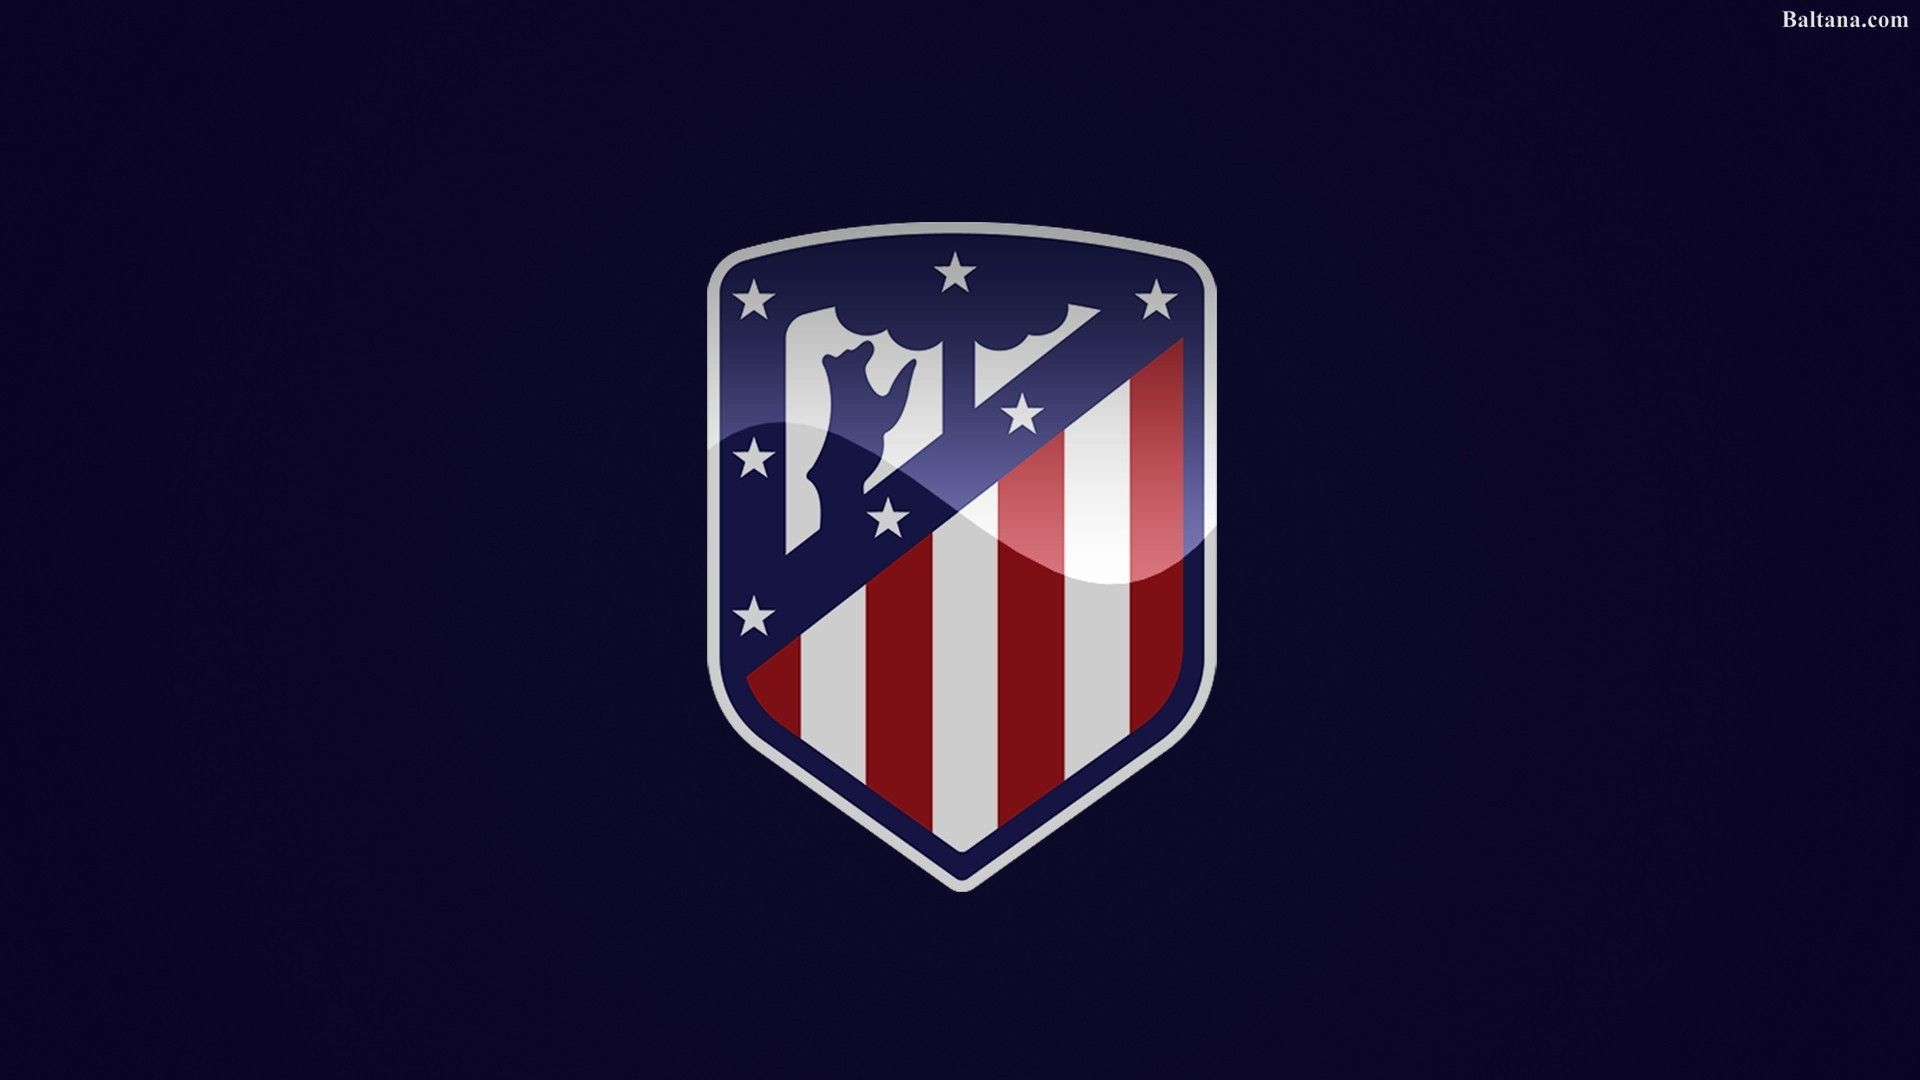 Atletico De Madrid Wallpapers Top Free Atletico De Madrid Backgrounds Wallpaperaccess